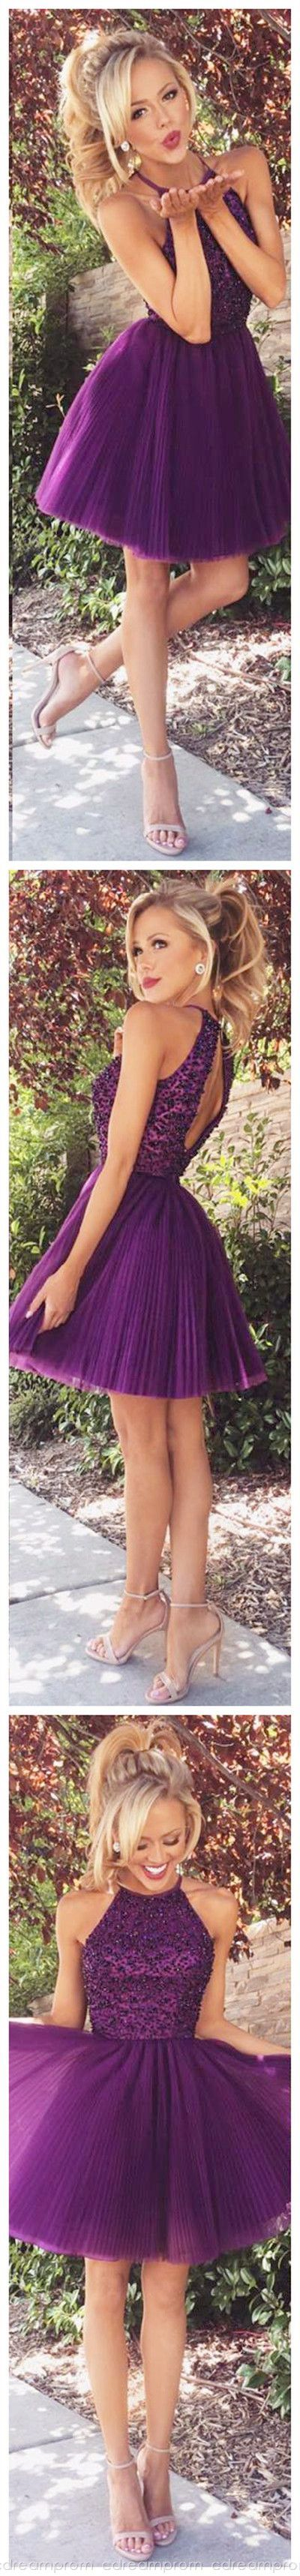 short dress prom dress homecoming dress